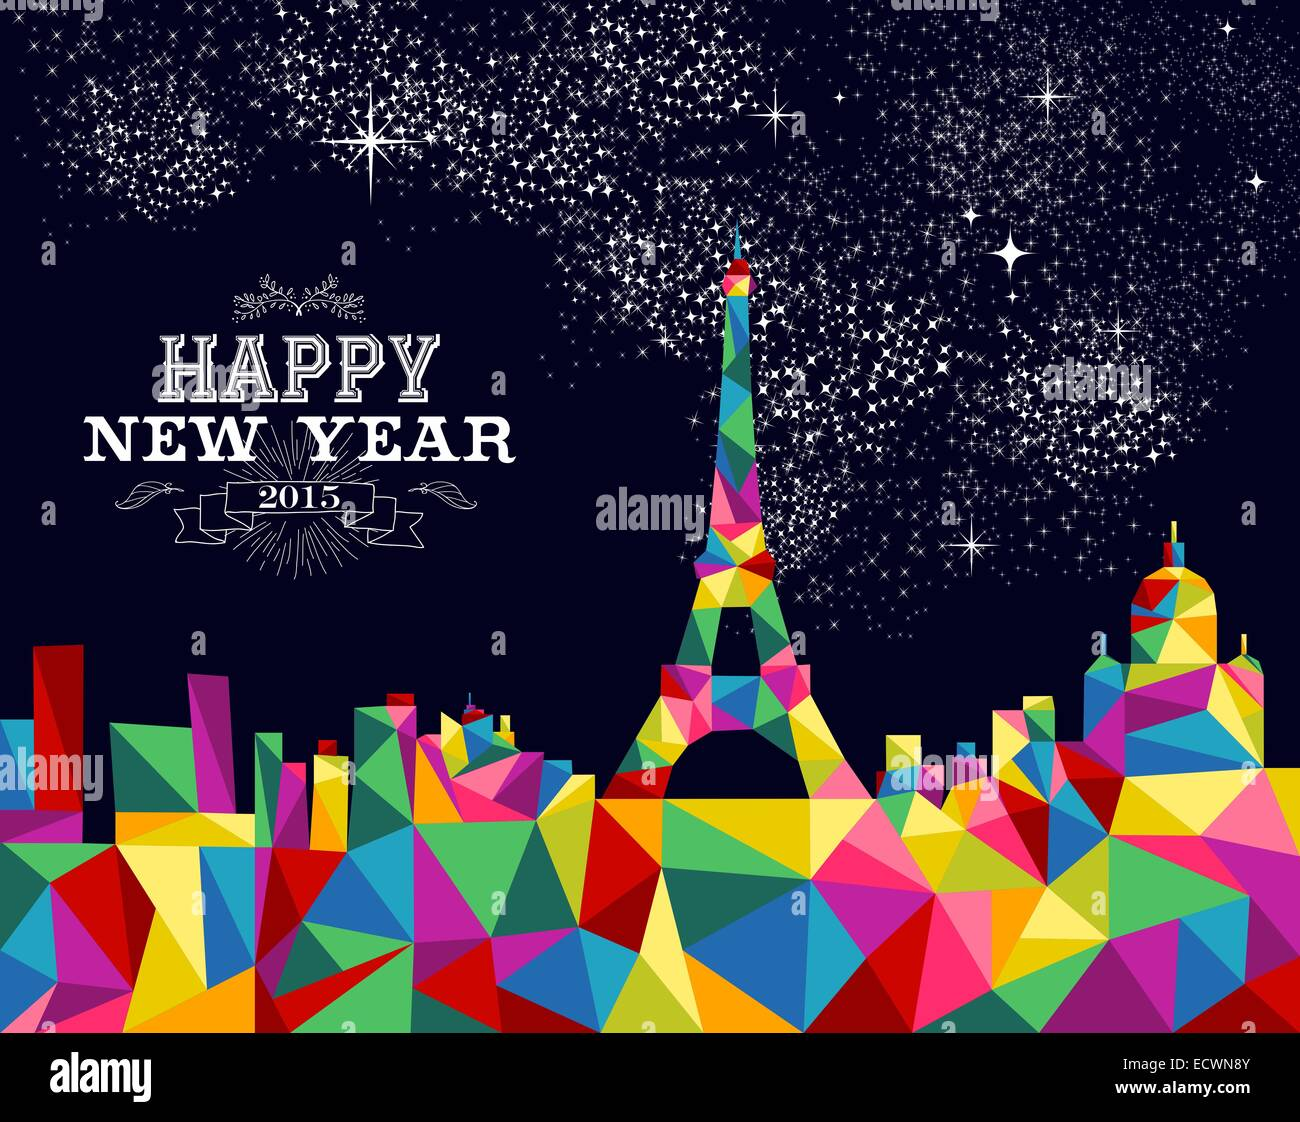 Happy New Year Greeting Card Or Poster Design With Colorful Triangle